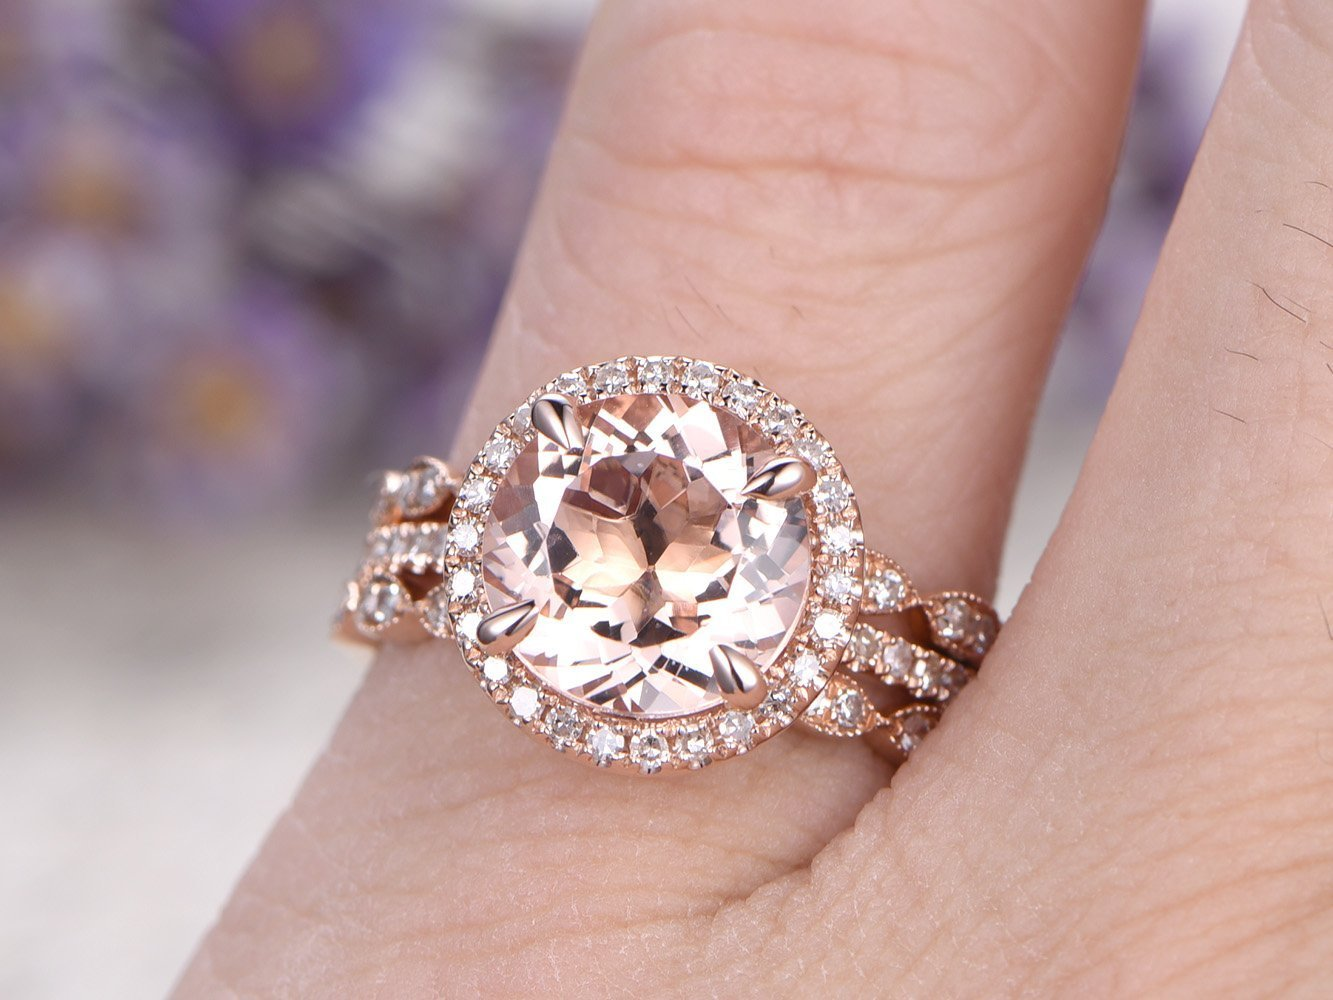 Amazon.com: 3pcs Pink Morganite Engagement Ring Set,8mm Round Cut ...